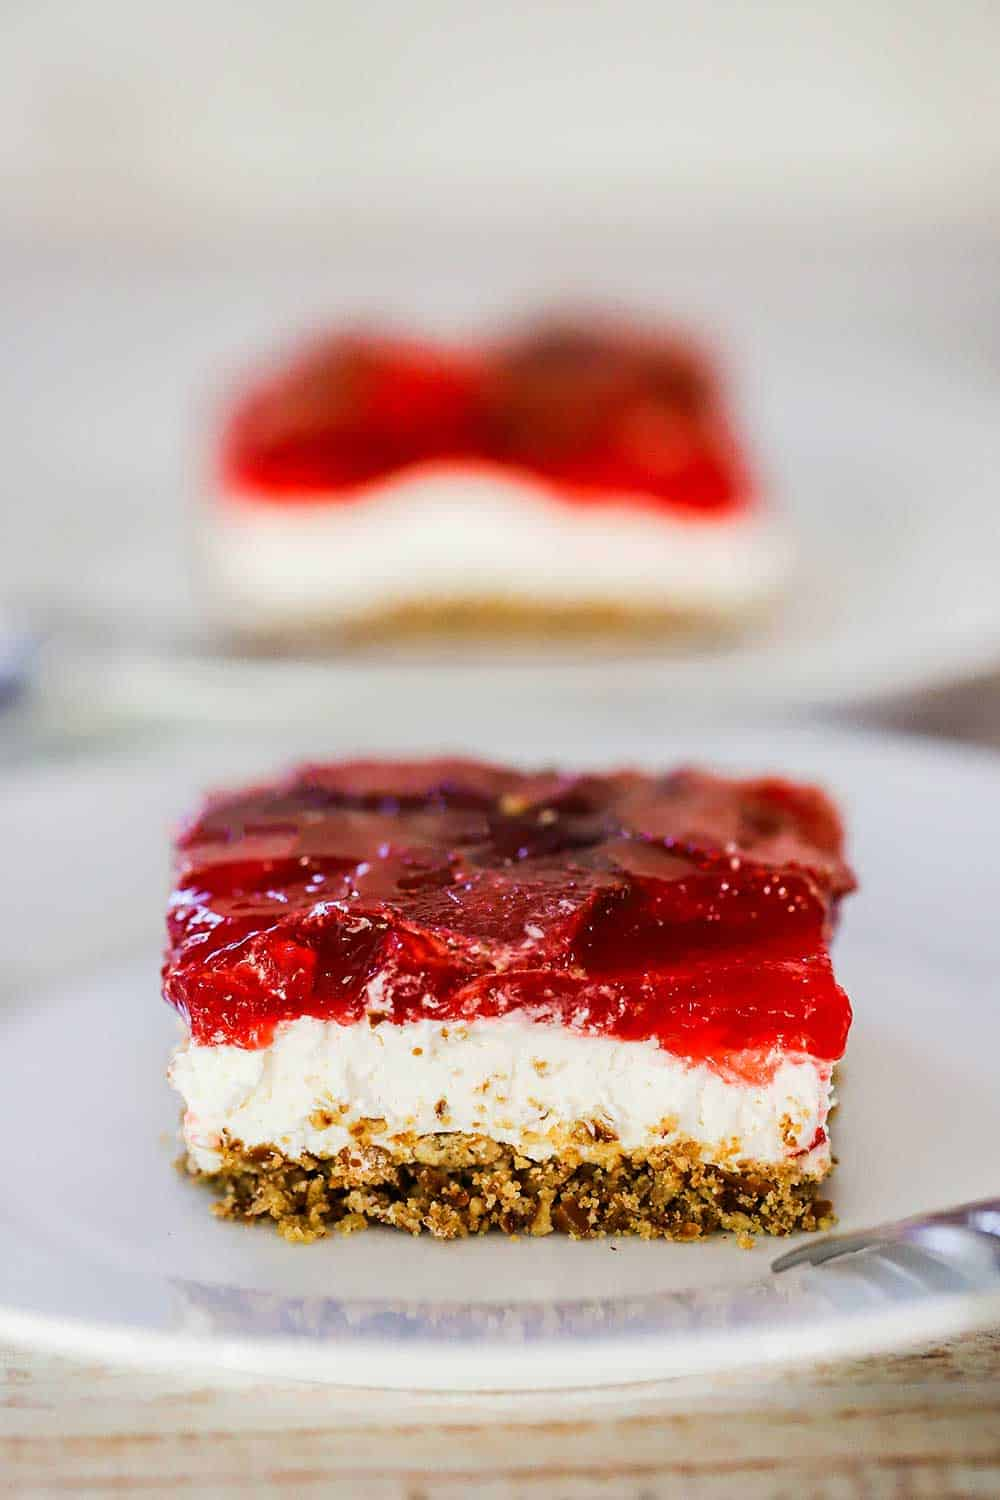 A white plate filled with a slice of strawberry pretzel salad.